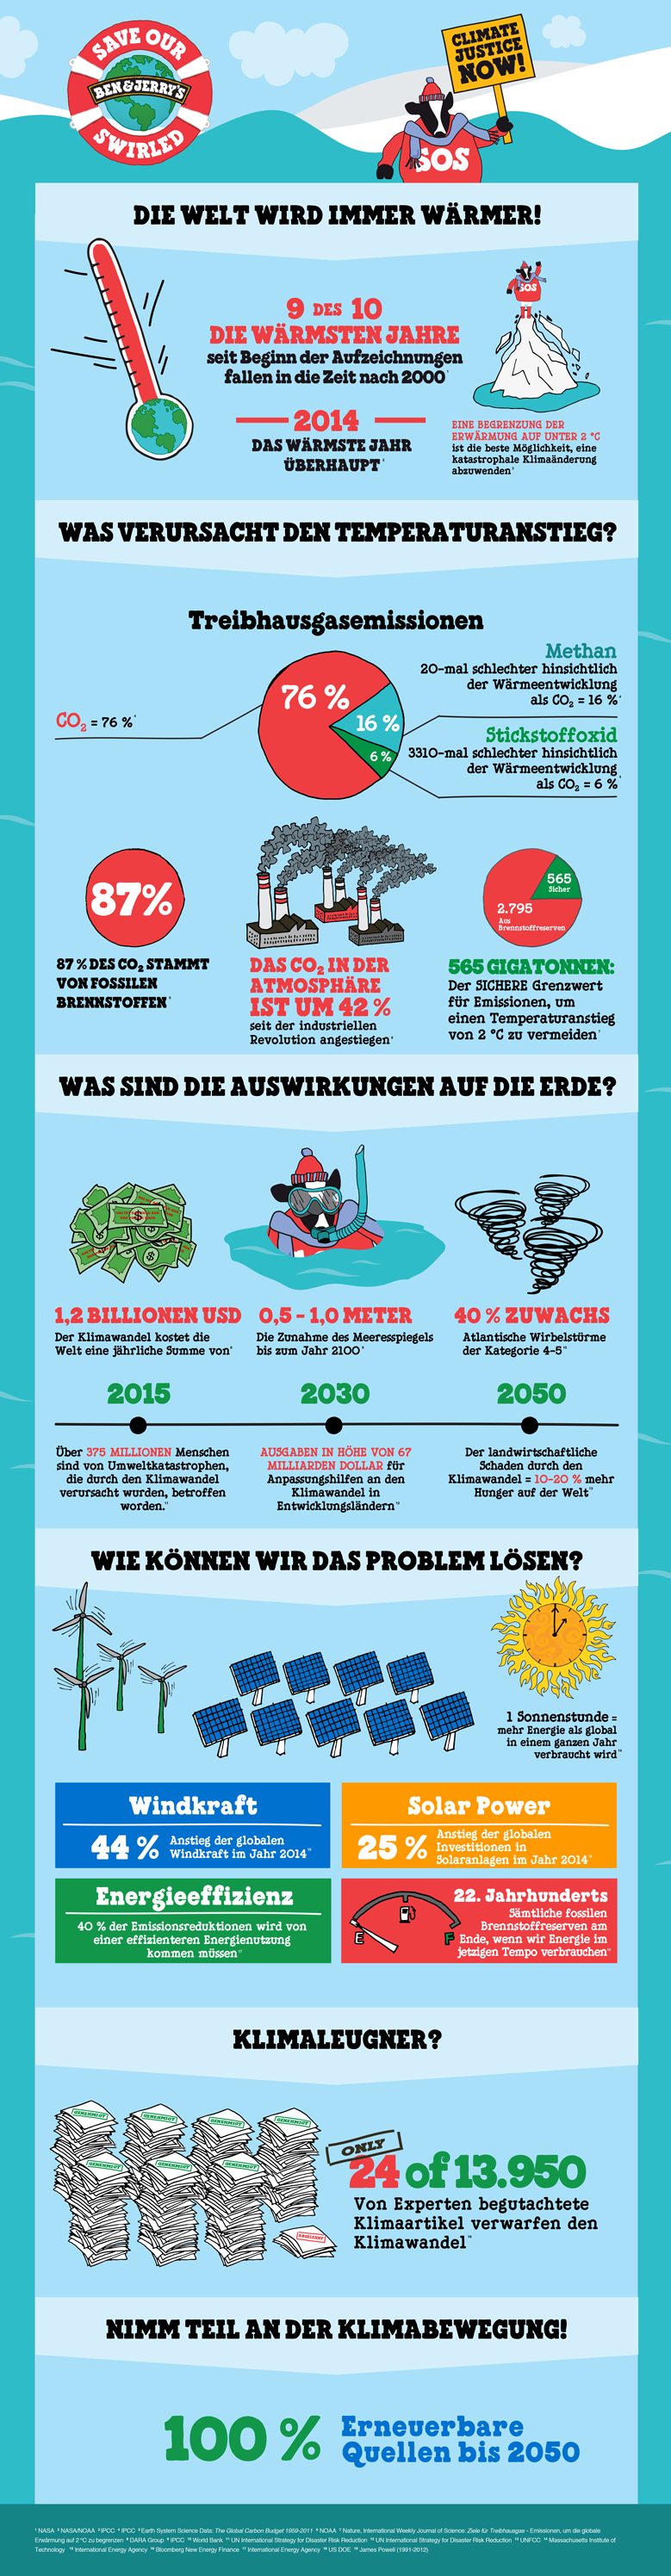 BJ_ClimateChange_Infographic_German-(Germany).png